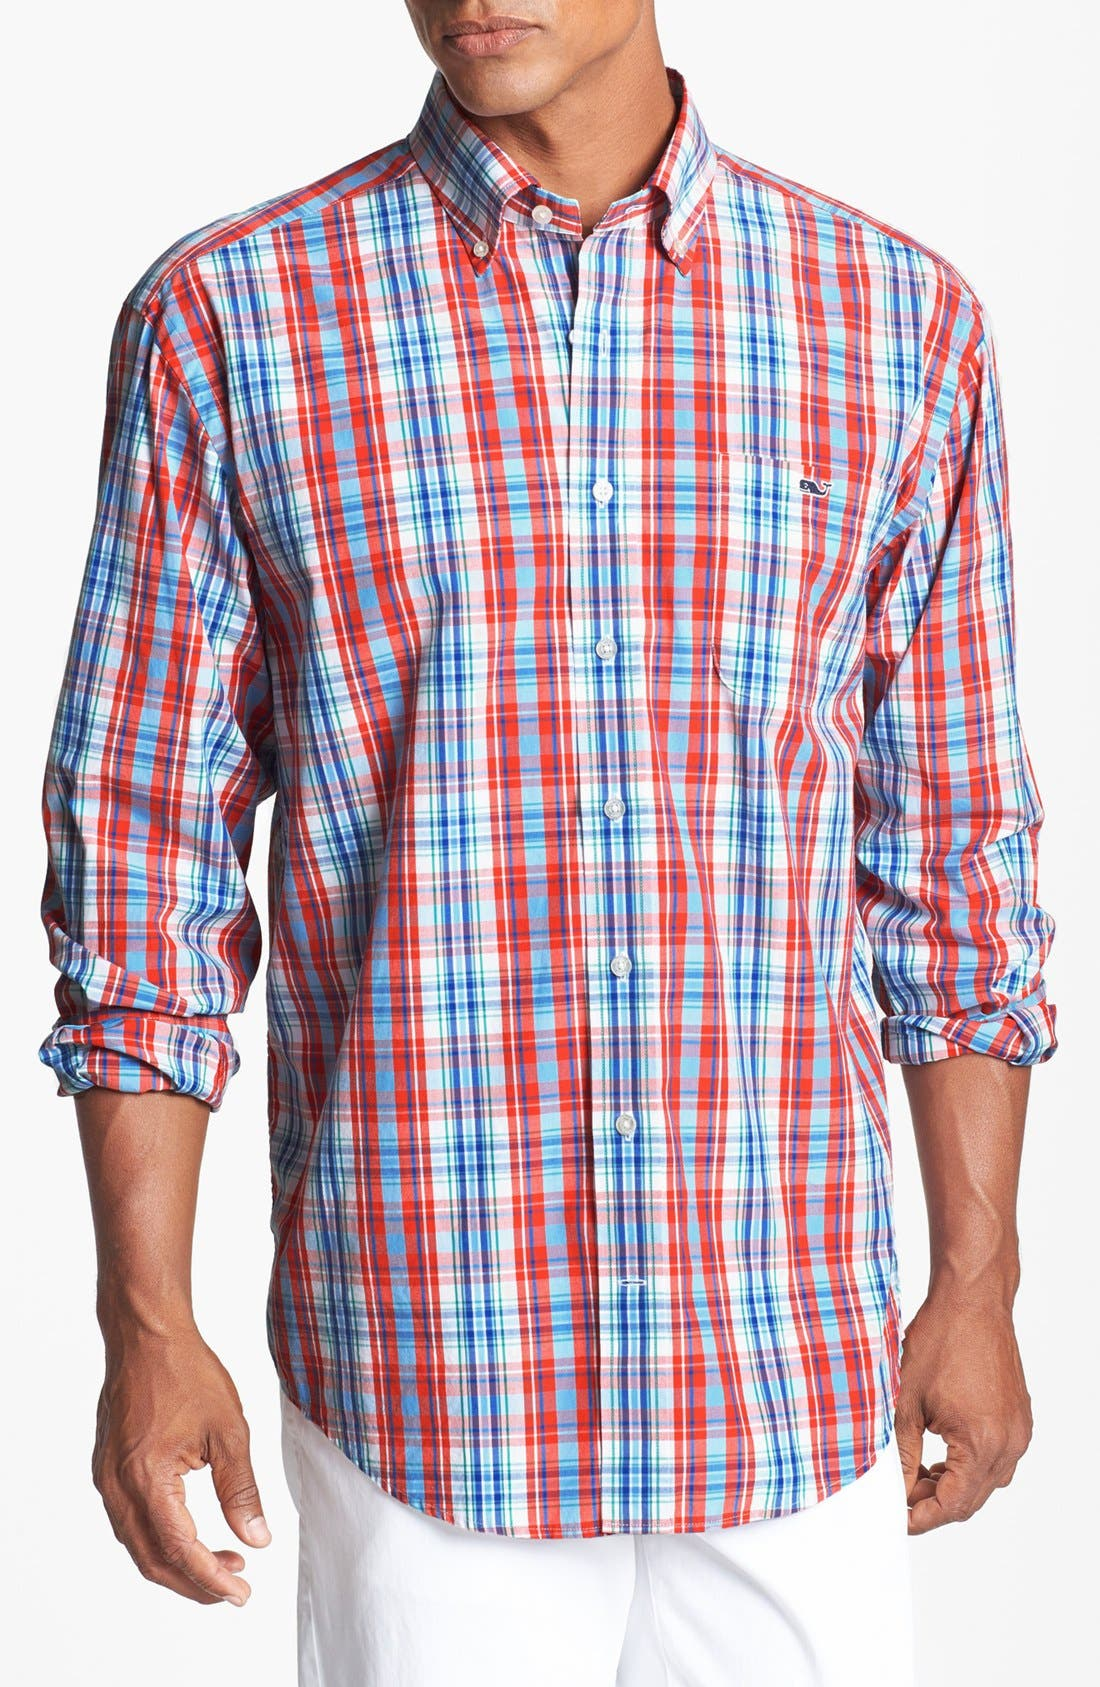 Alternate Image 1 Selected - Vineyard Vines 'Tucker - Fog Cove' Sport Shirt